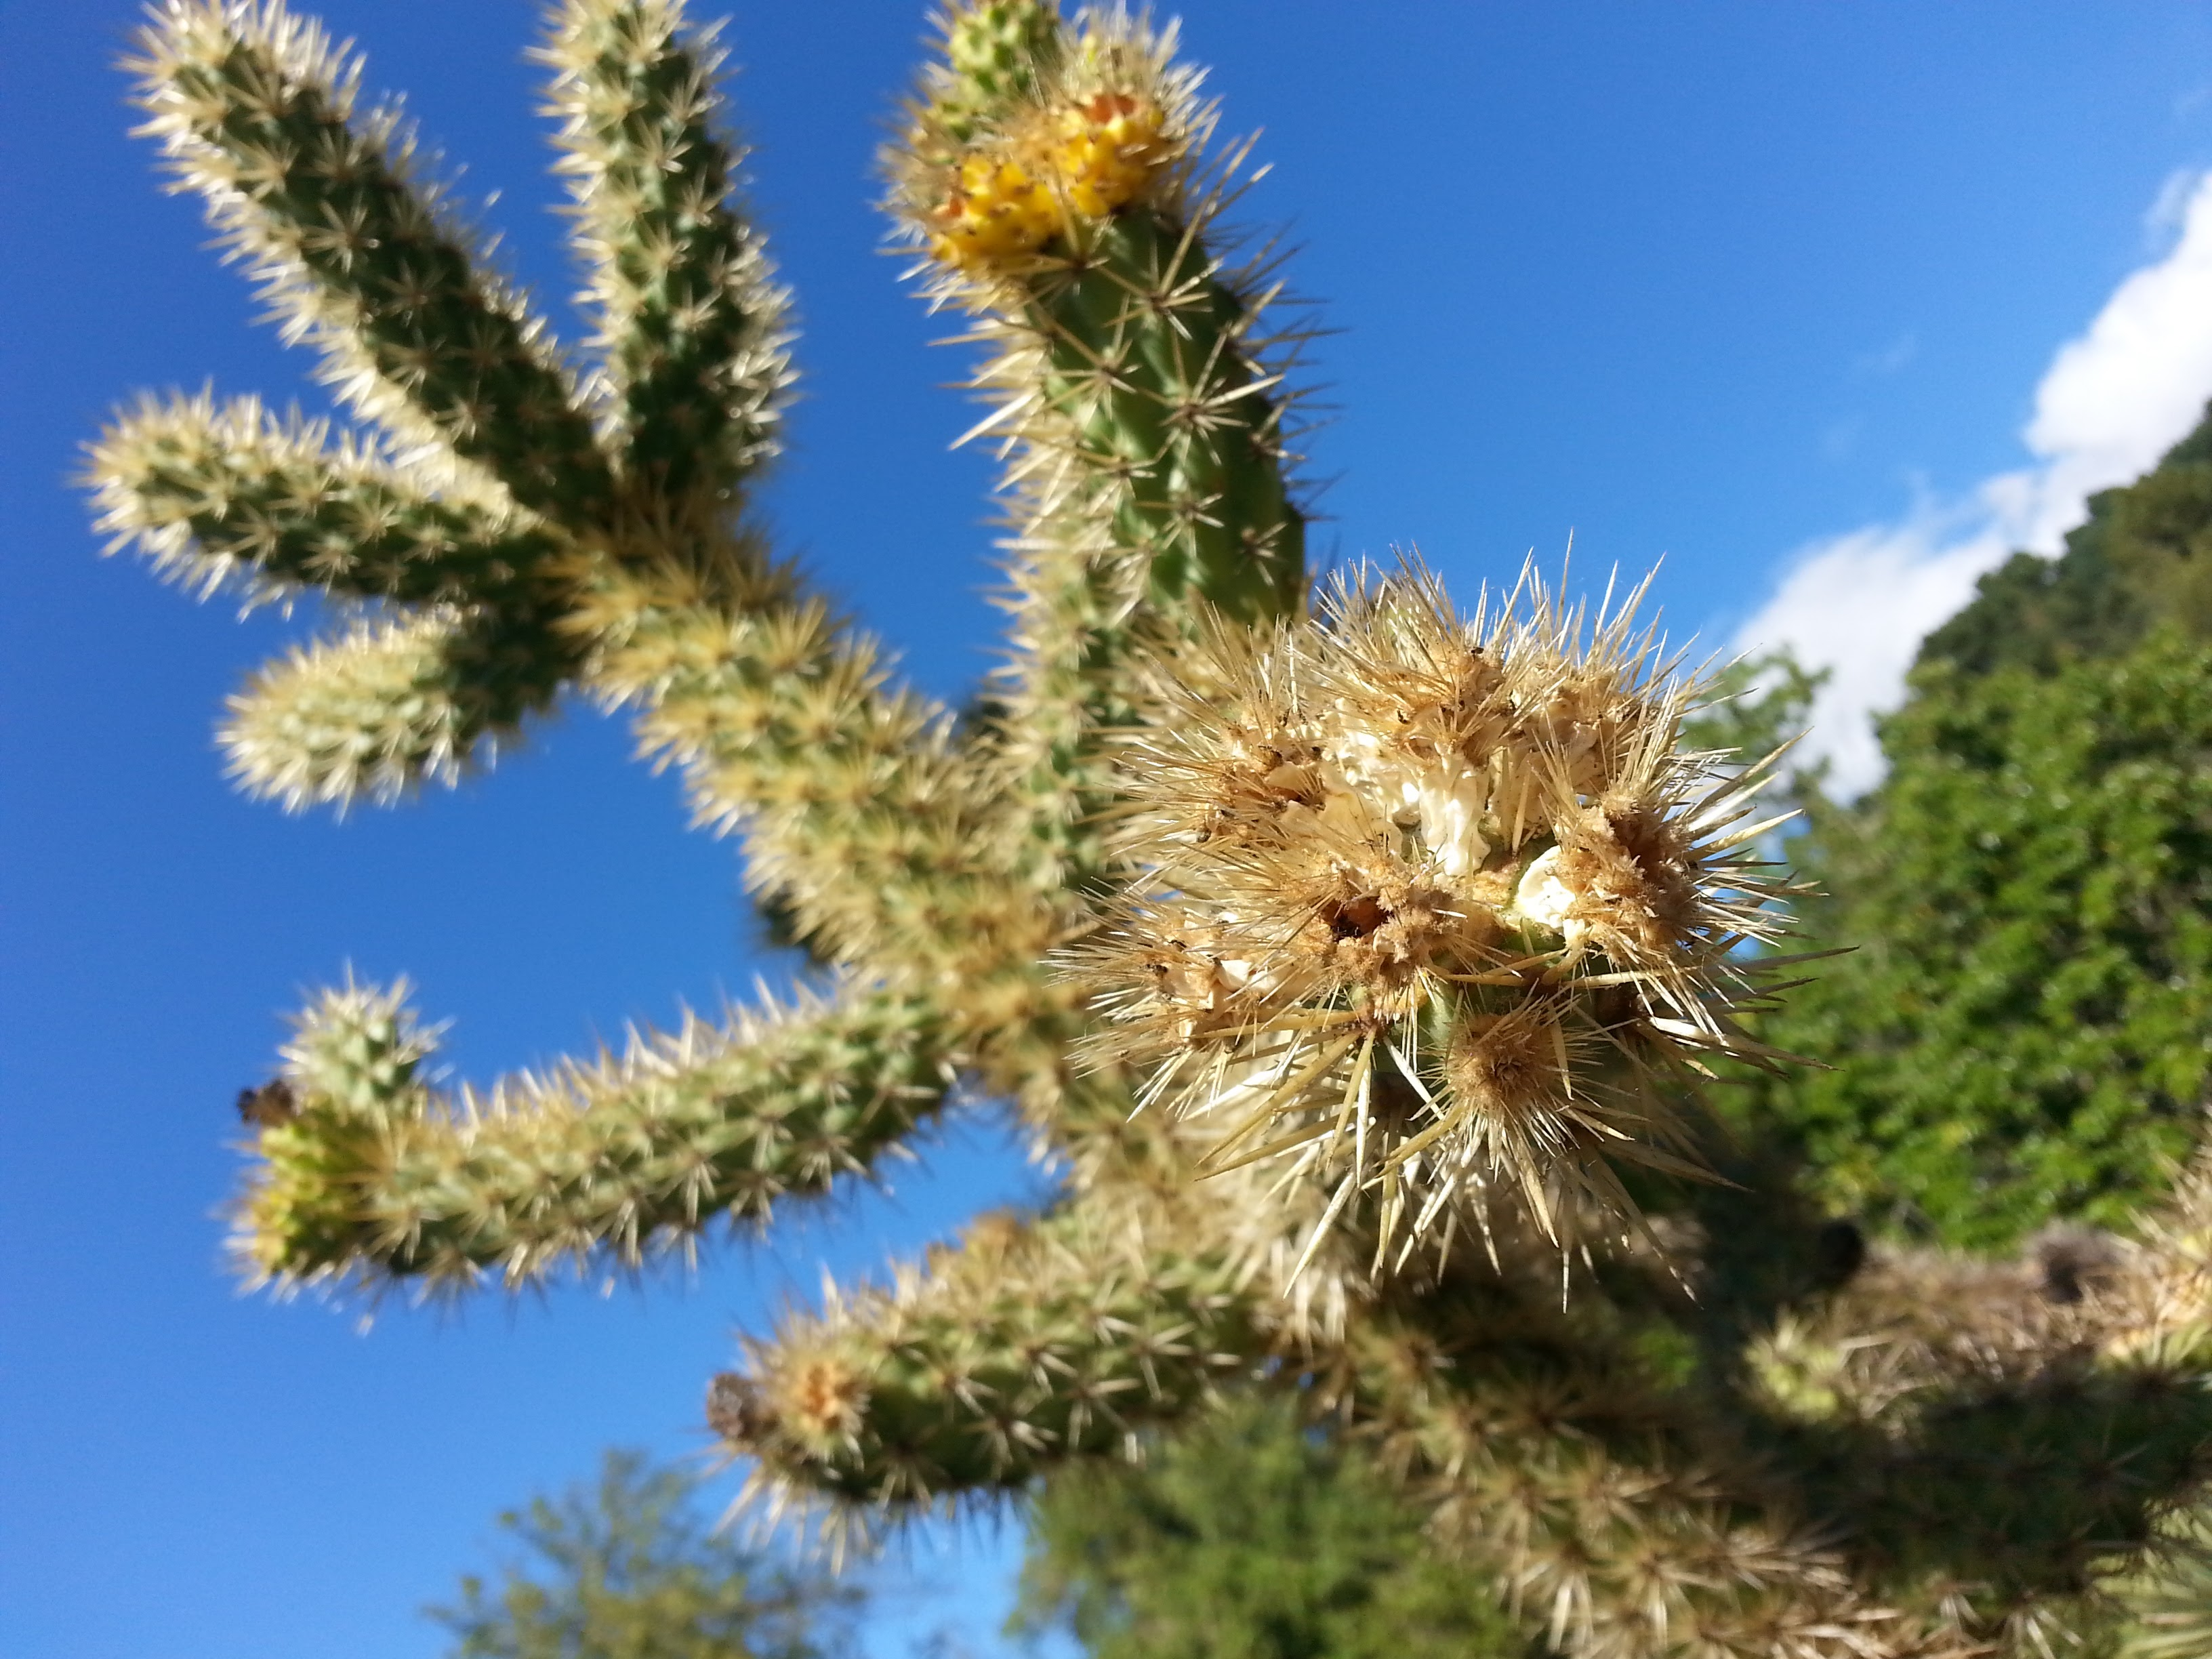 Cholla, photo by Lastech